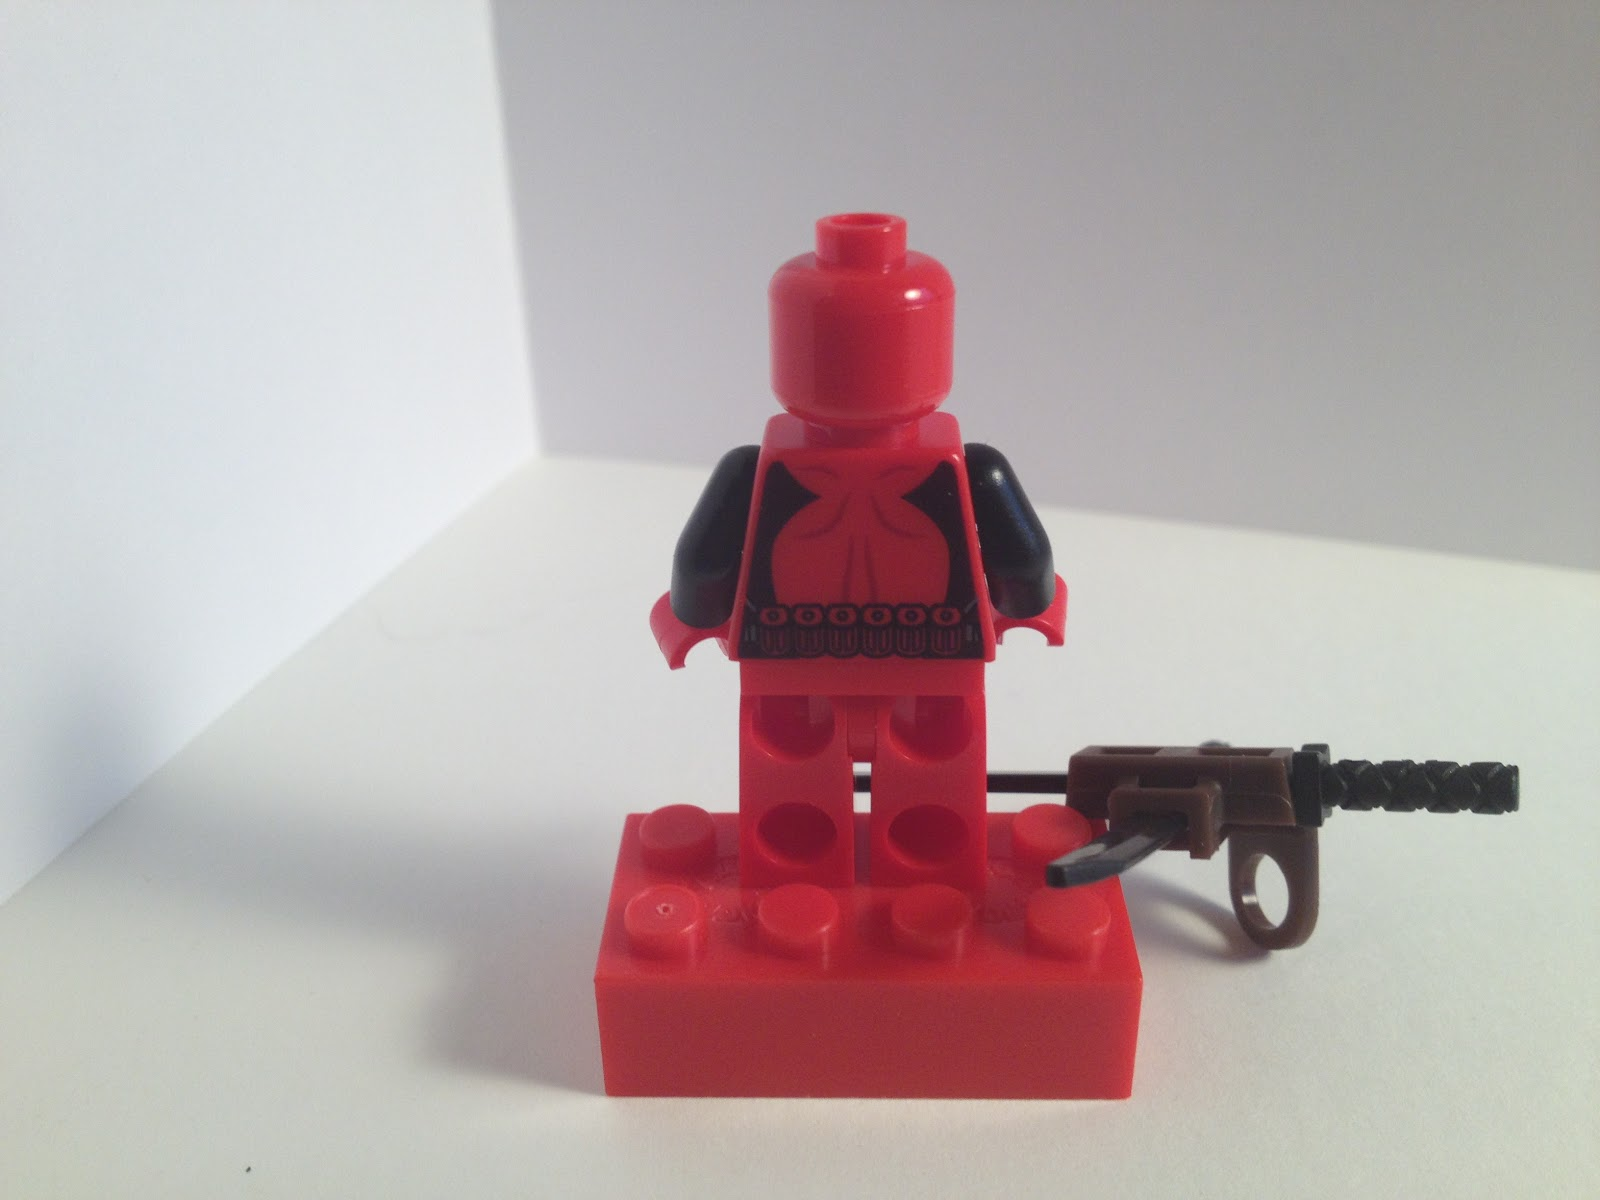 LEGO HYDRA SOLDIER Marvel DC UNIVERSE SUPER HEROES MINIFIGURE 76017 new